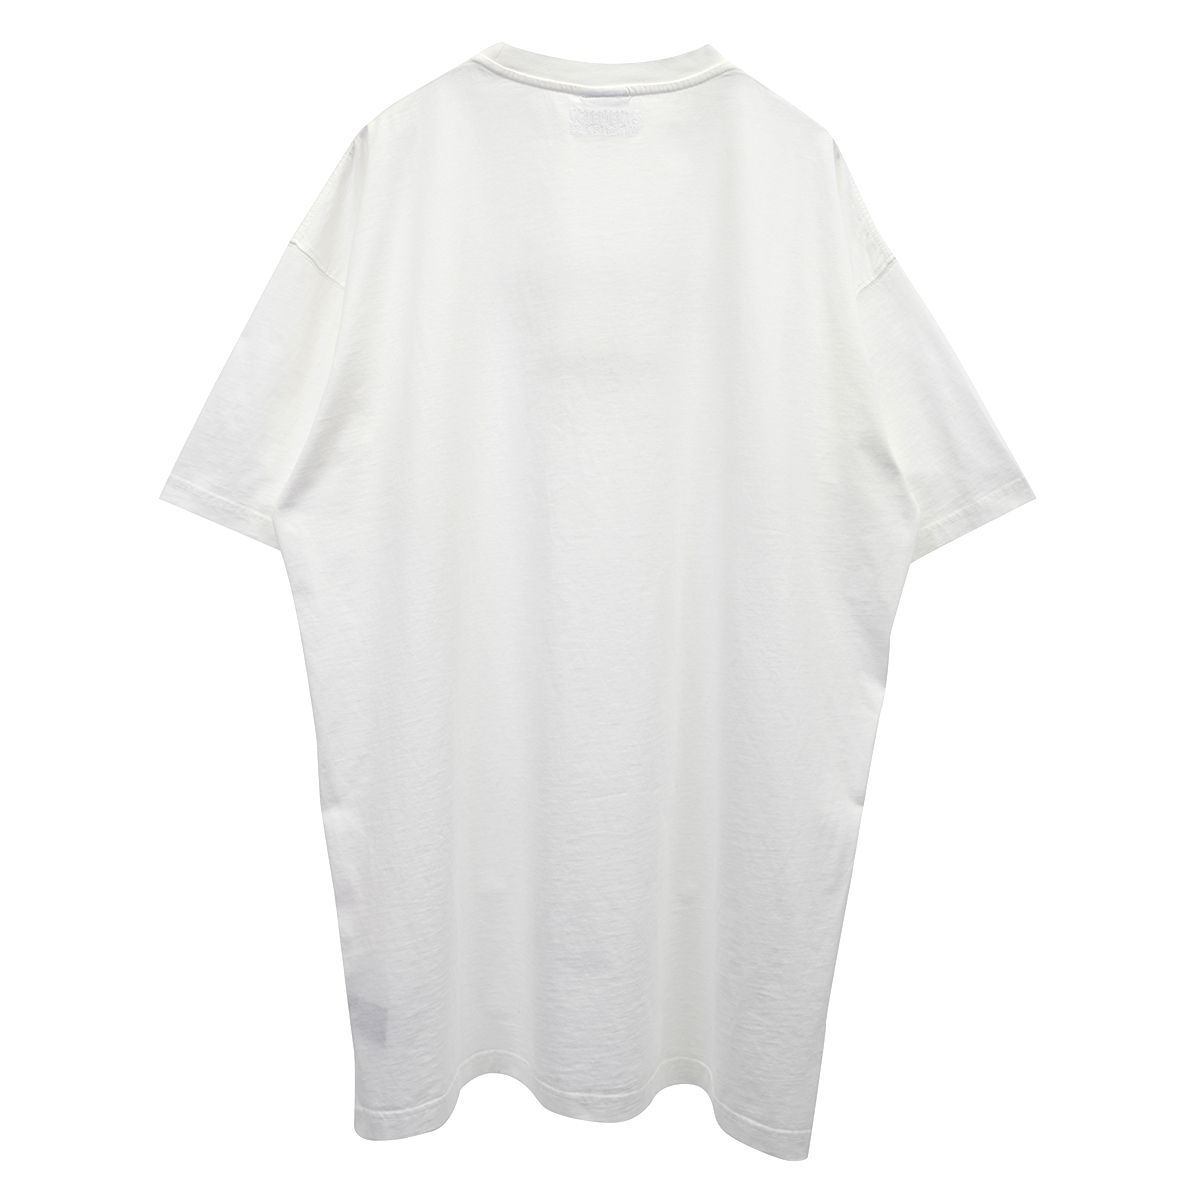 VETEMENTS ANTWERP LOGO T-SHIRT / WHITE